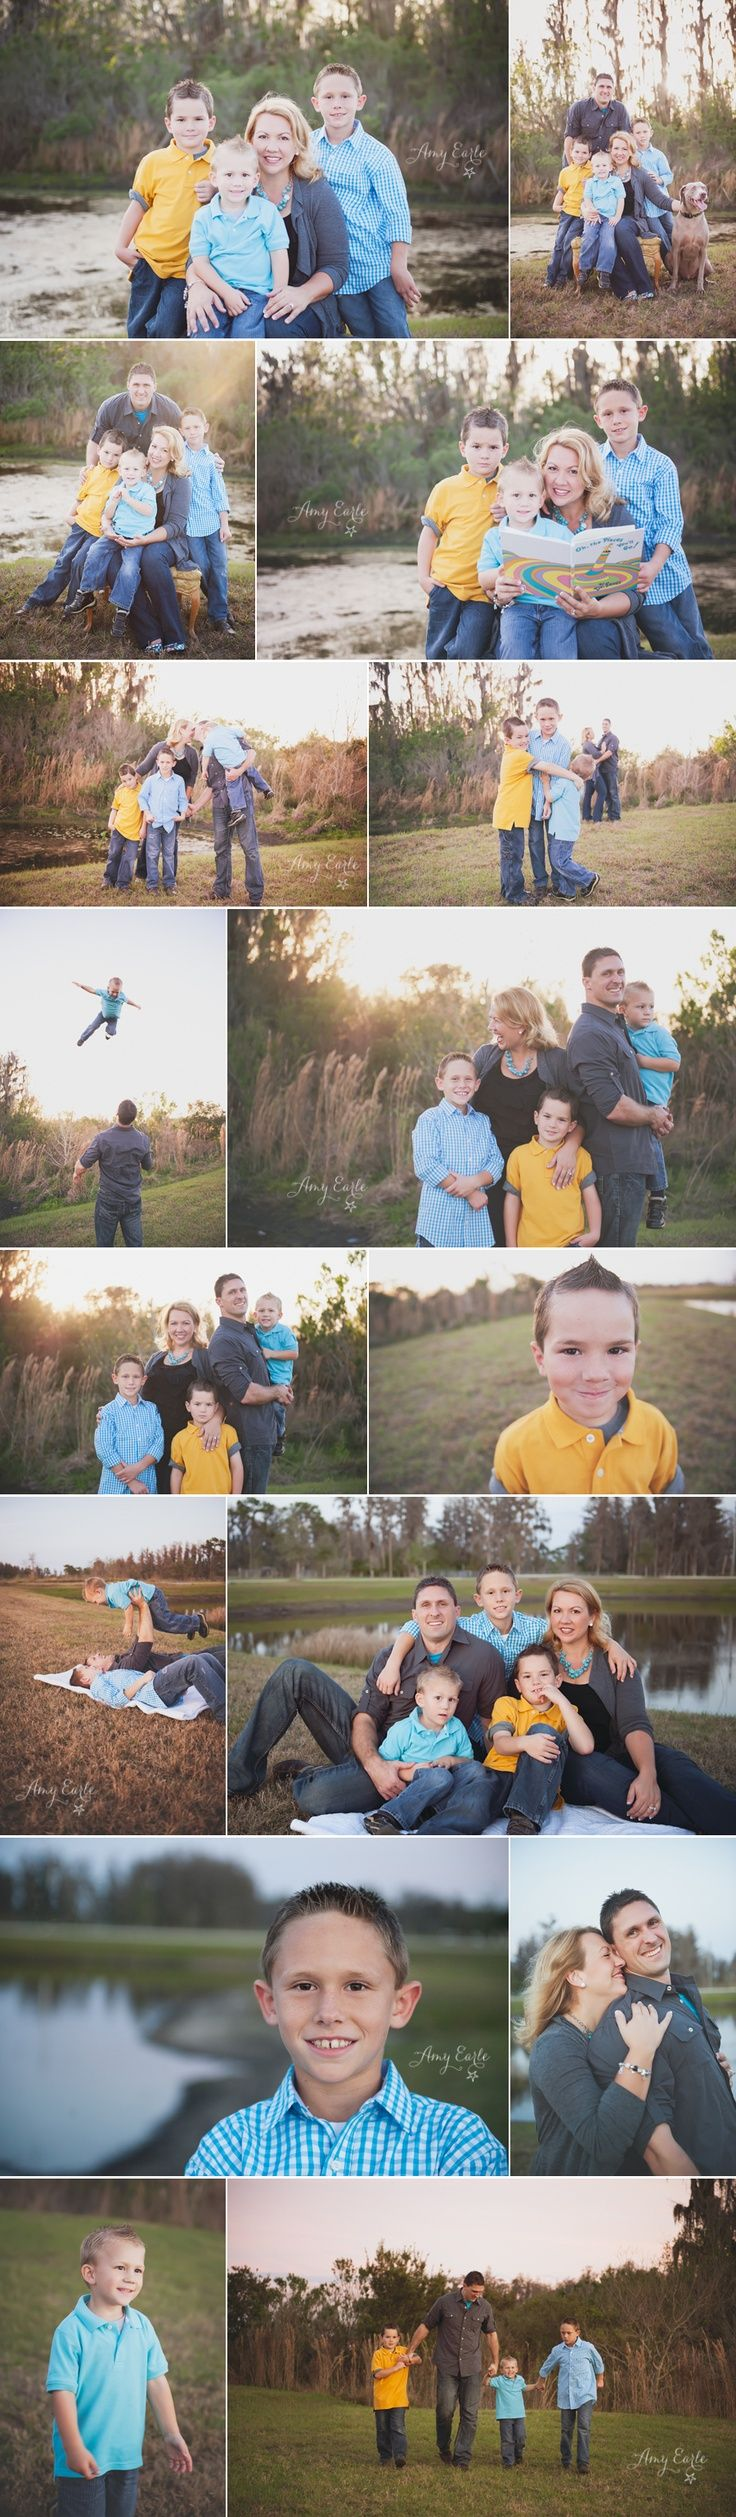 family photography poses for one day. Especially since all the children are boys...probably going to be my life lol